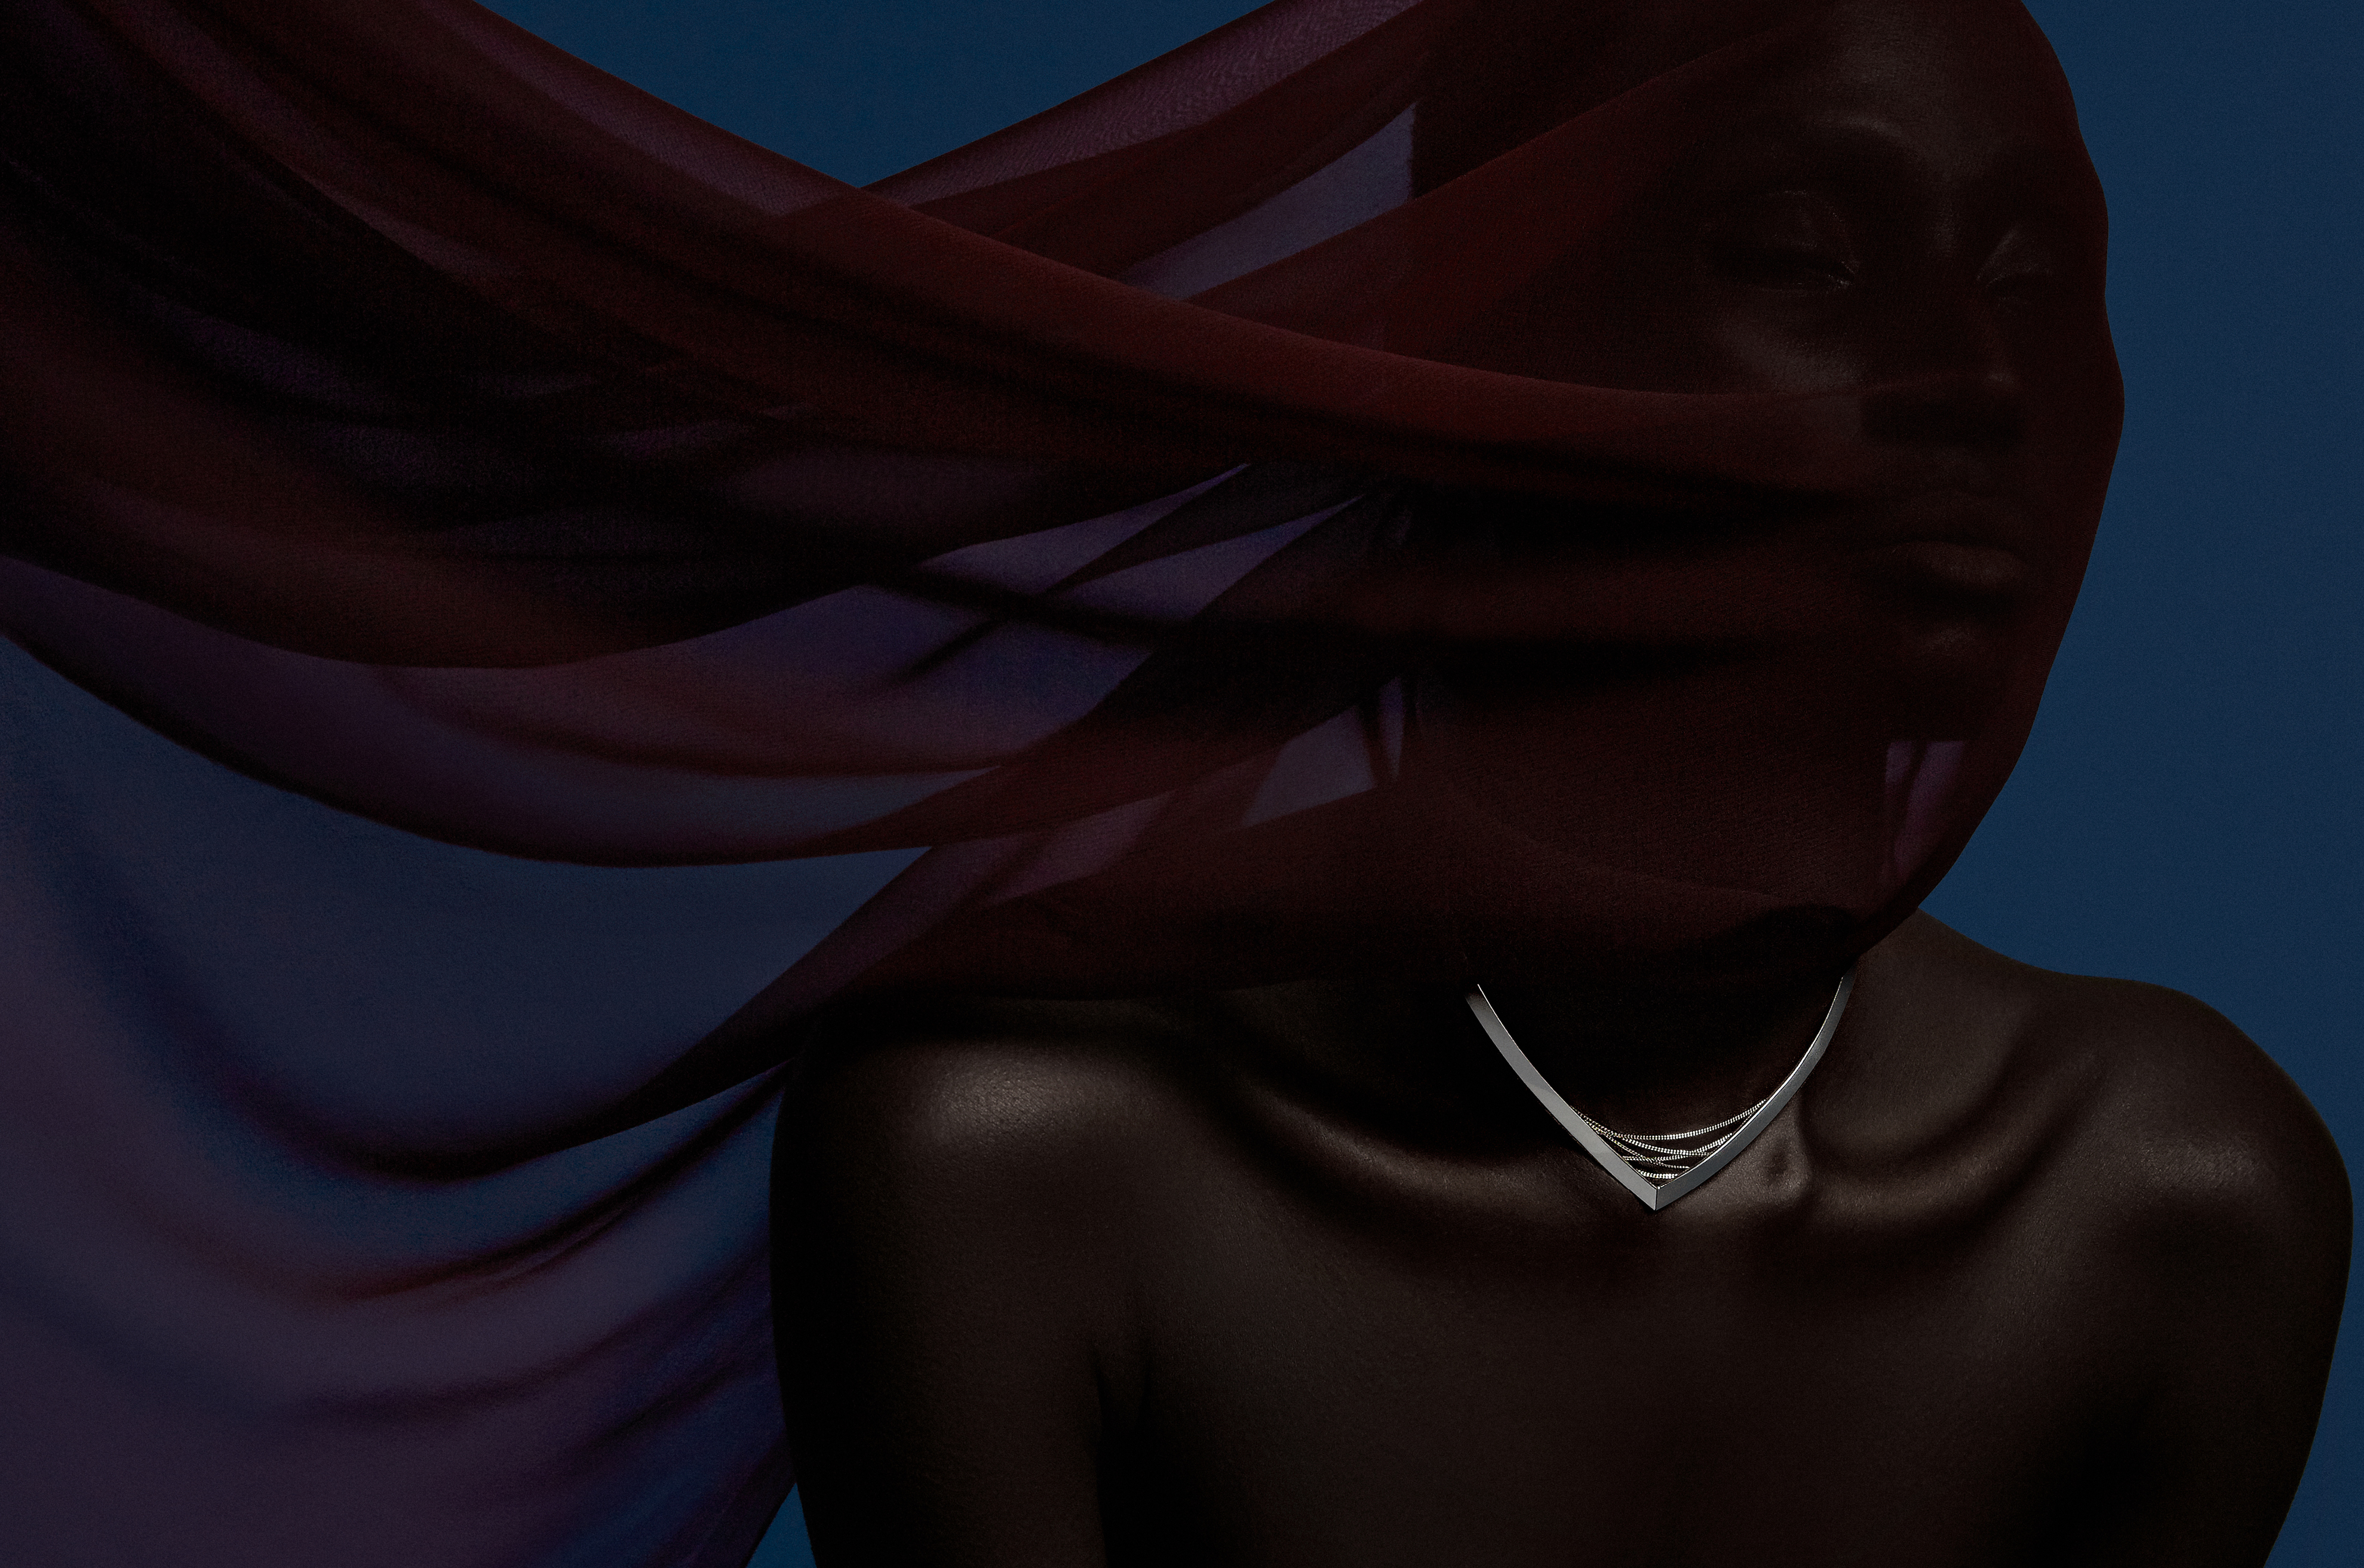 Photograph of jewelry campaign of model with veil produced by DTE Studio for Bliss Lau and Webby Awards.